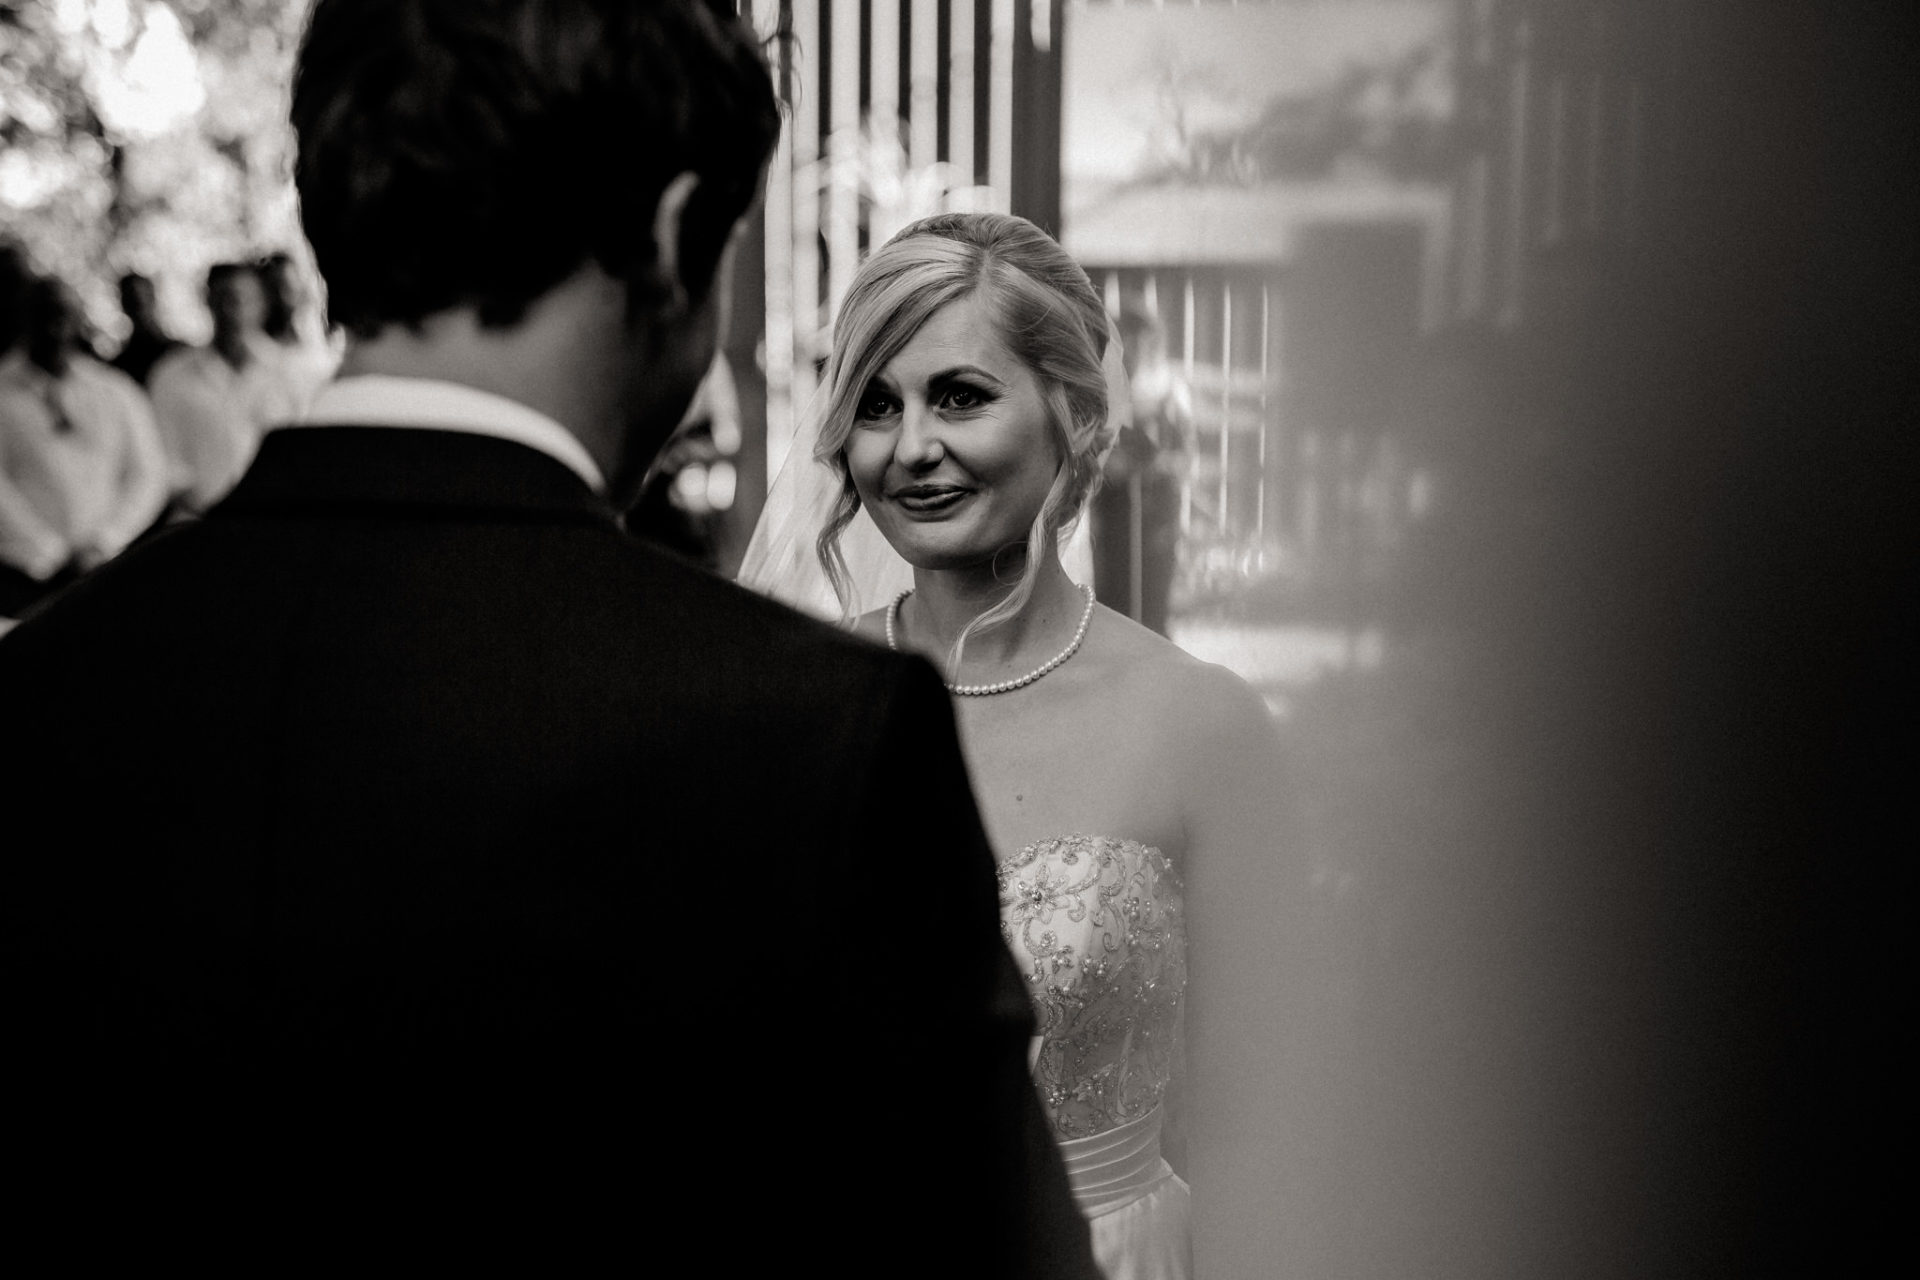 backyard-wedding-australia-melbourne-ceremony-first-look